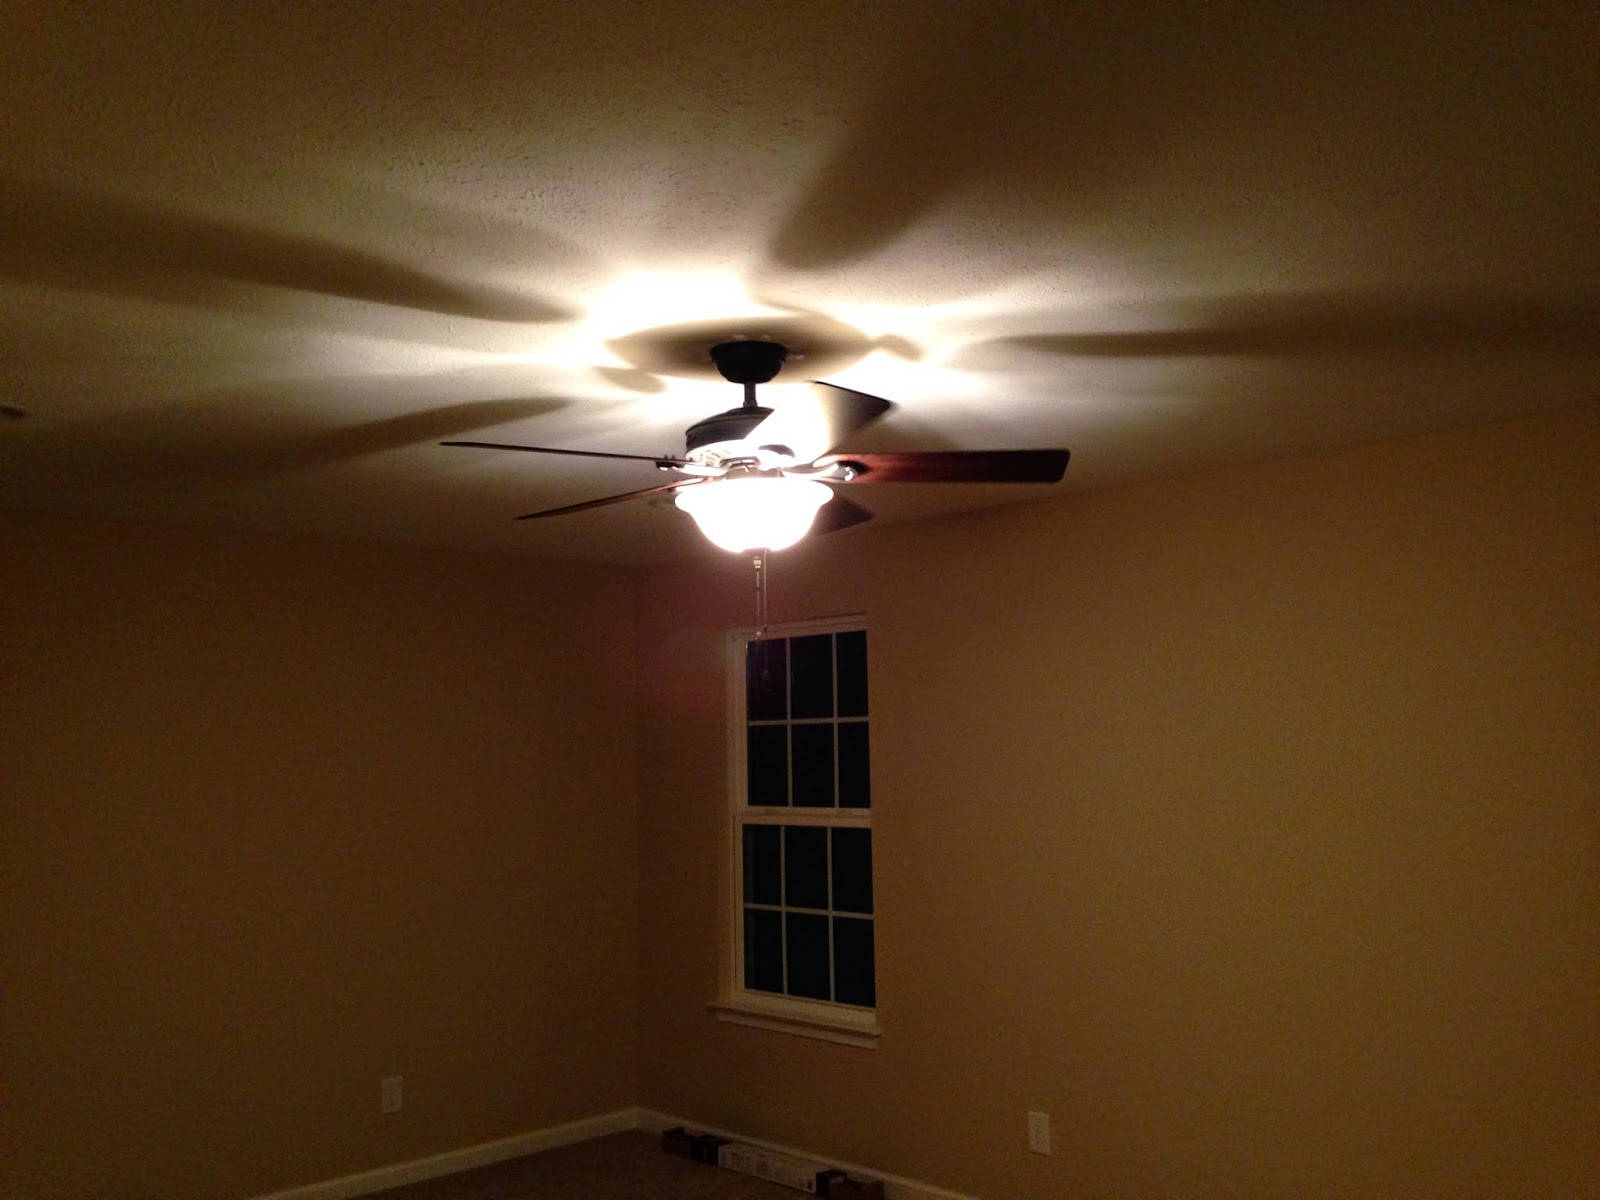 Master Bedroom Ceiling Fans Homevisit Virtual Tour What Size Ceiling Fan For Bedroom Home